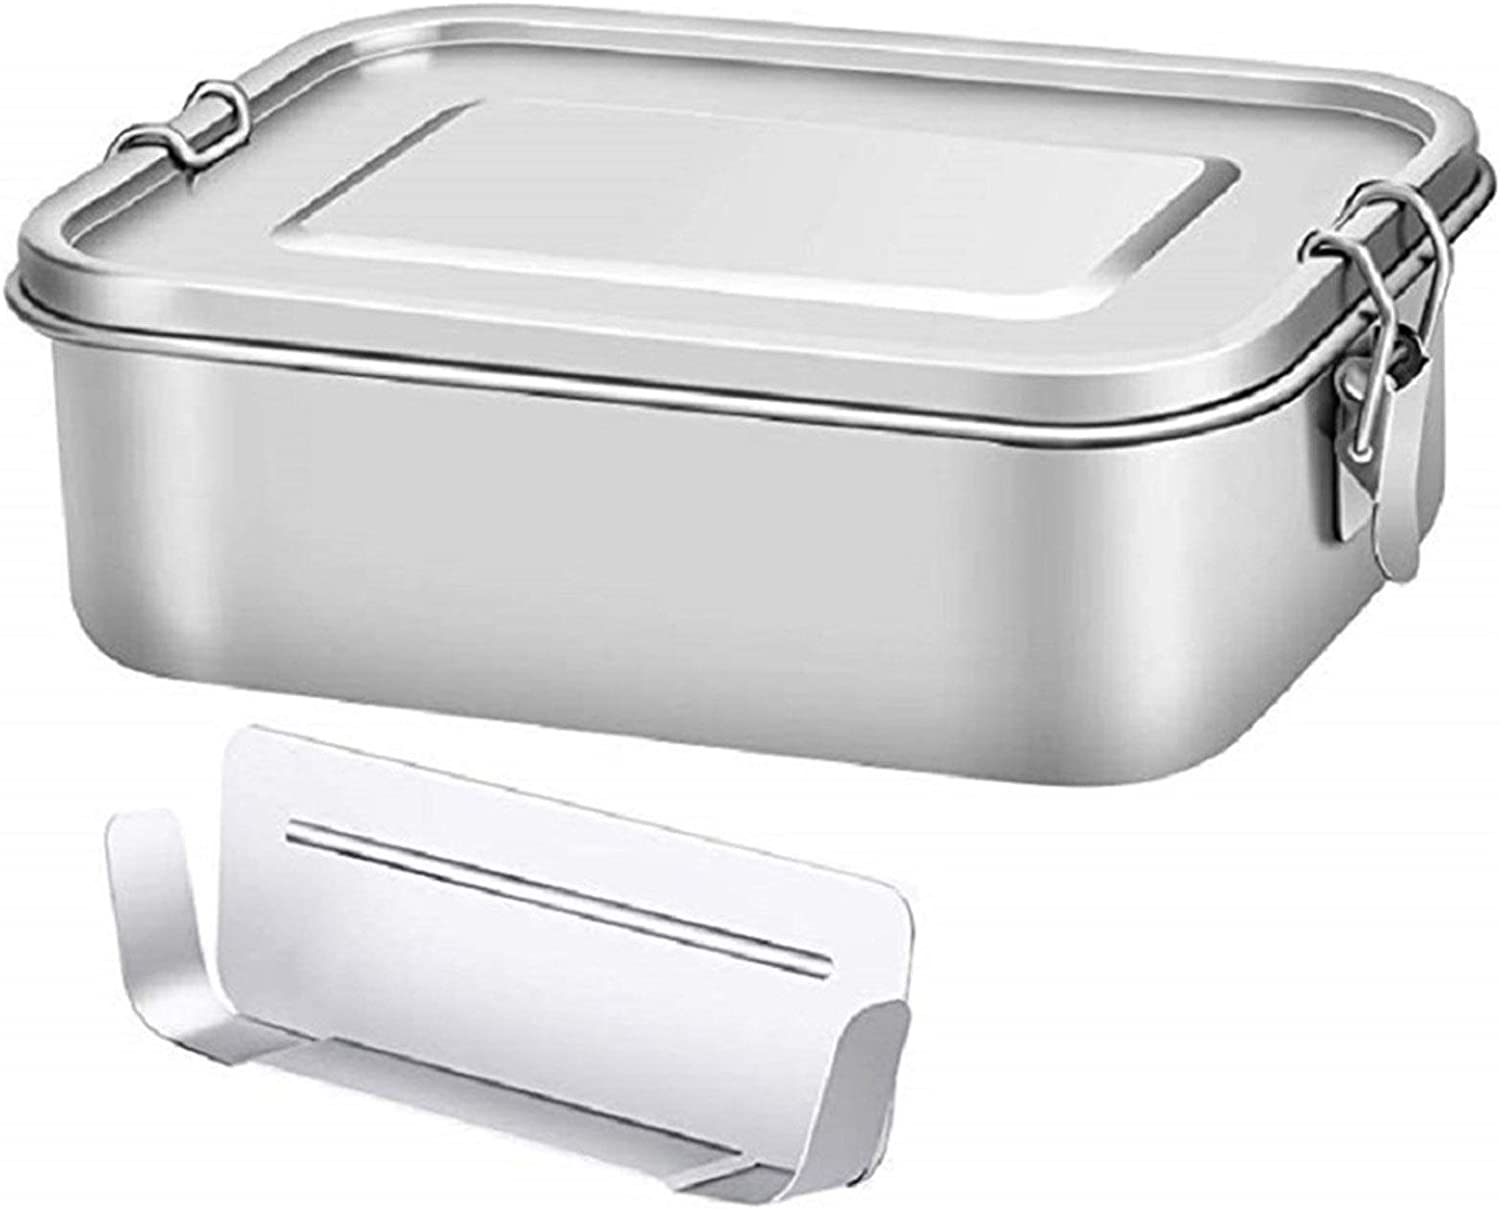 ZHTX 47oz Stainless Steel Food Container Leak Proof Bento Lunch Box For Commute With Lockable Clips Dishwasher Safe (Color : Silver)